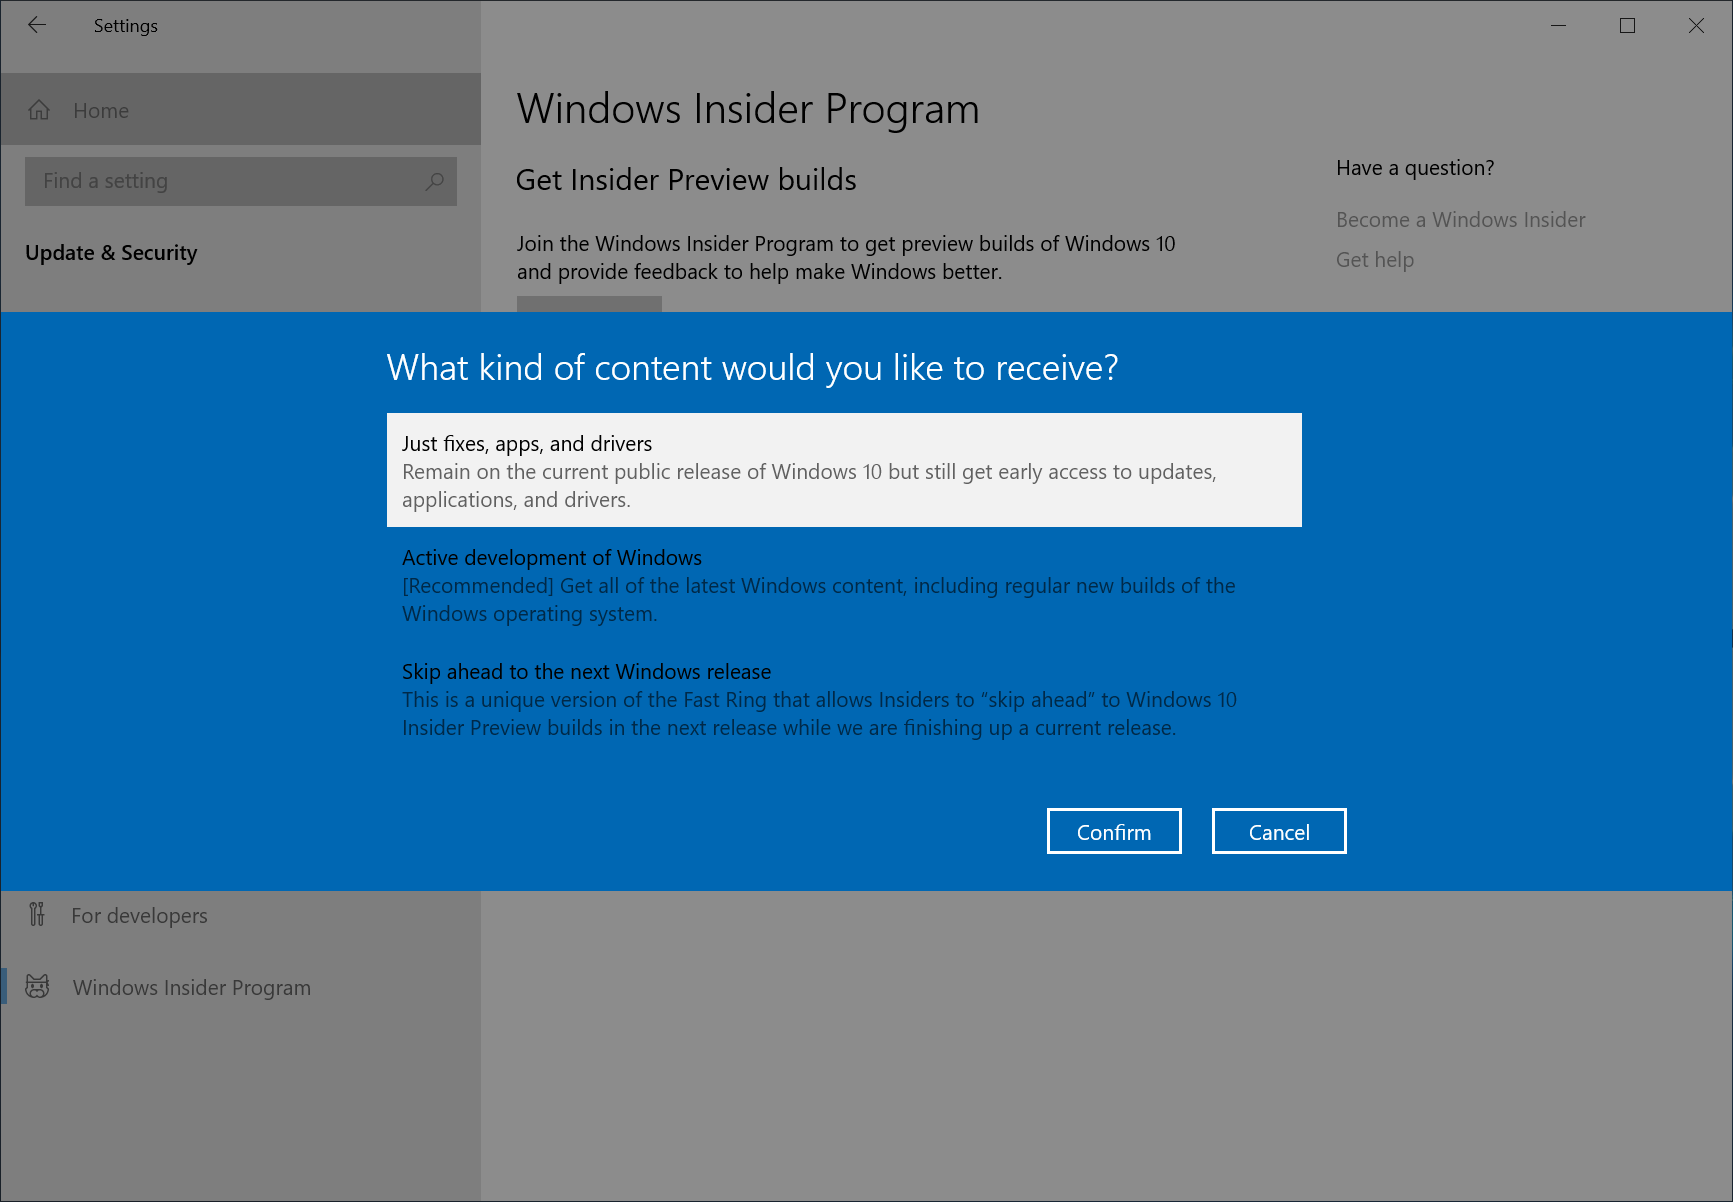 How to get the Windows 10 November 2019 Update 2ea5c577bdcfe2d55873bba61ff65c9f.png